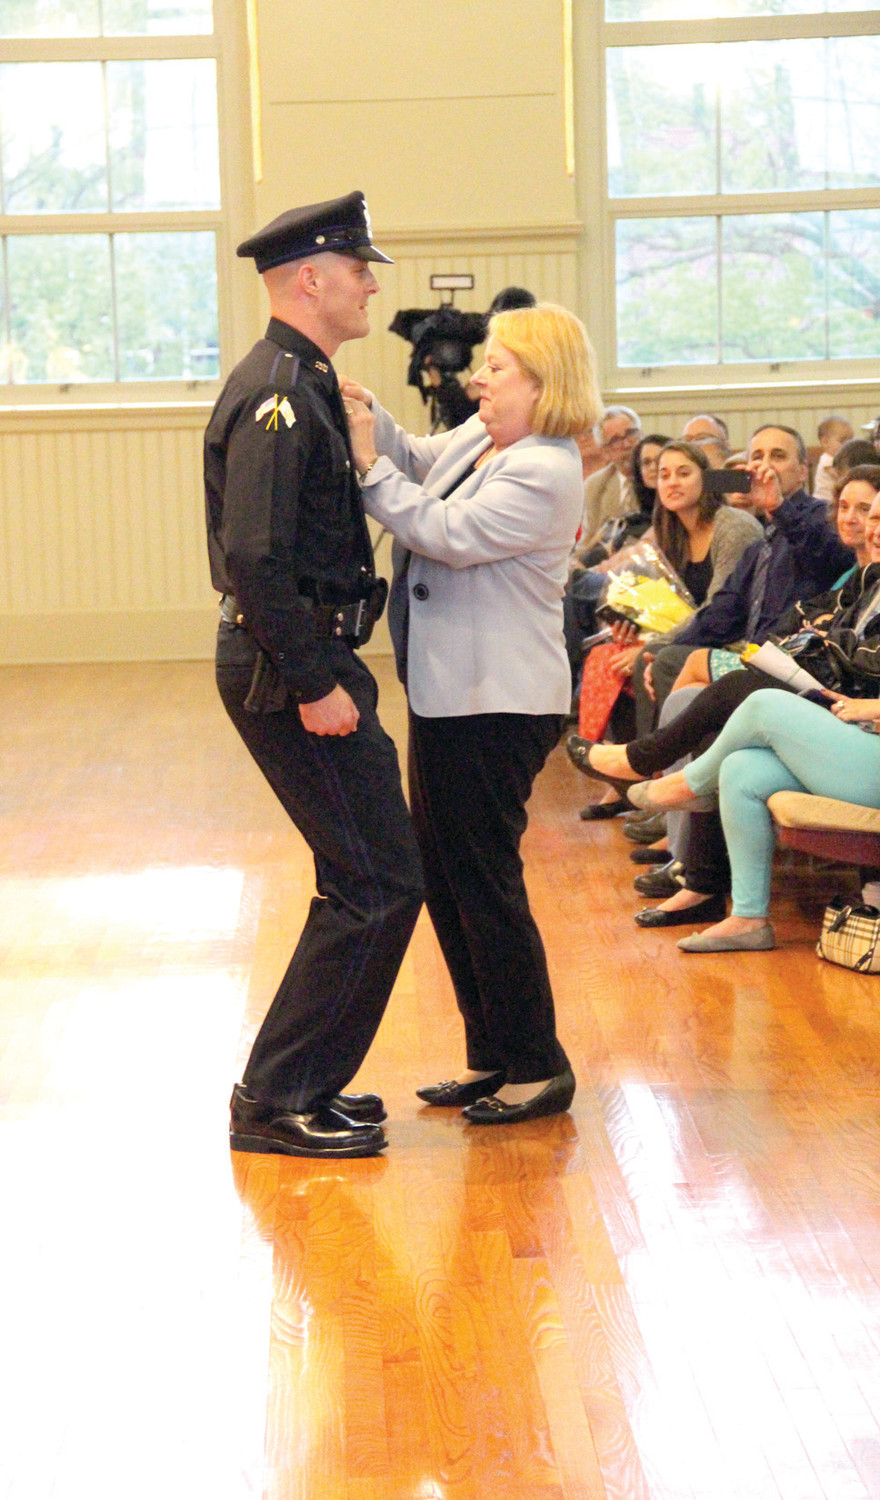 HE ALMOST HAD TO KNEEL: Probationary officer Ryan Shibley had to stoop in order for his mother, Carol, to pin on his badge.